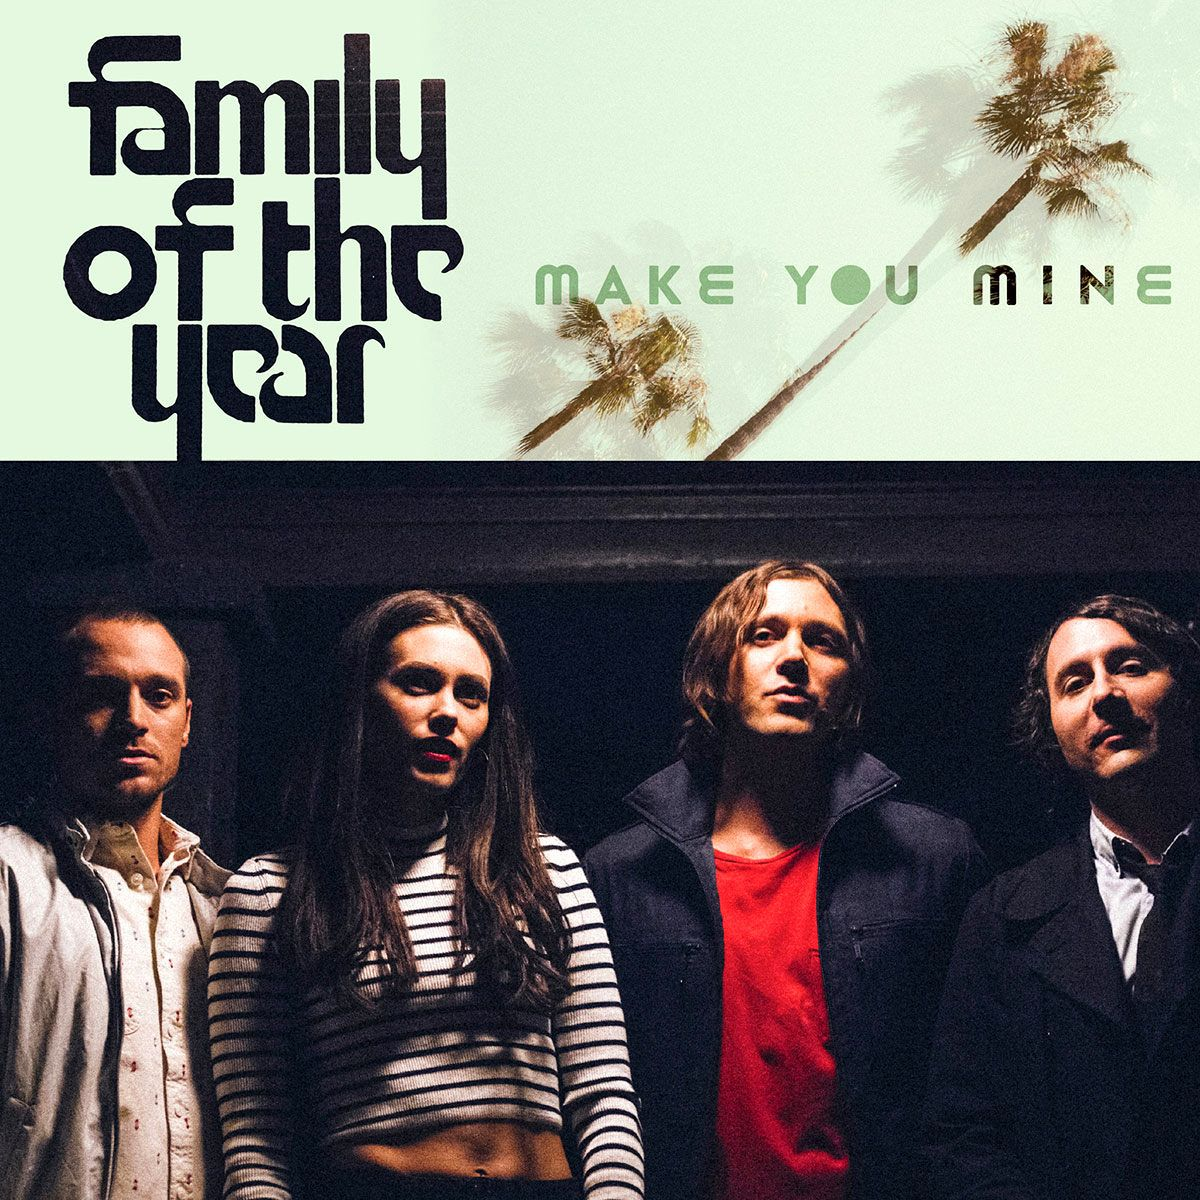 Family of the year make you mine s